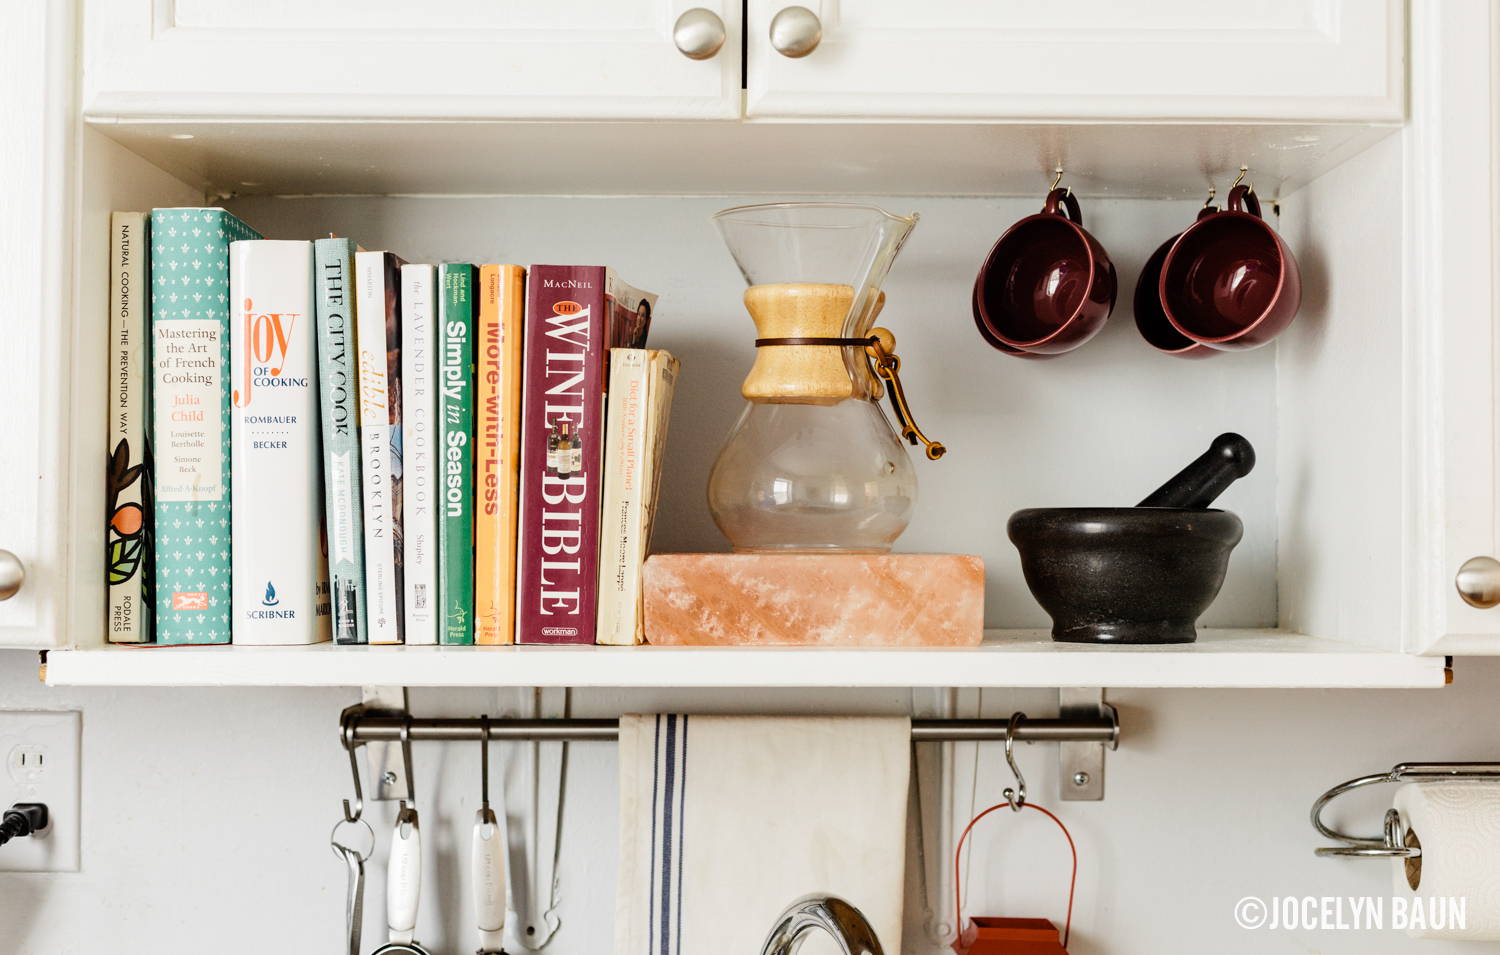 bkstyled Rima Campbell cookbooks chemex